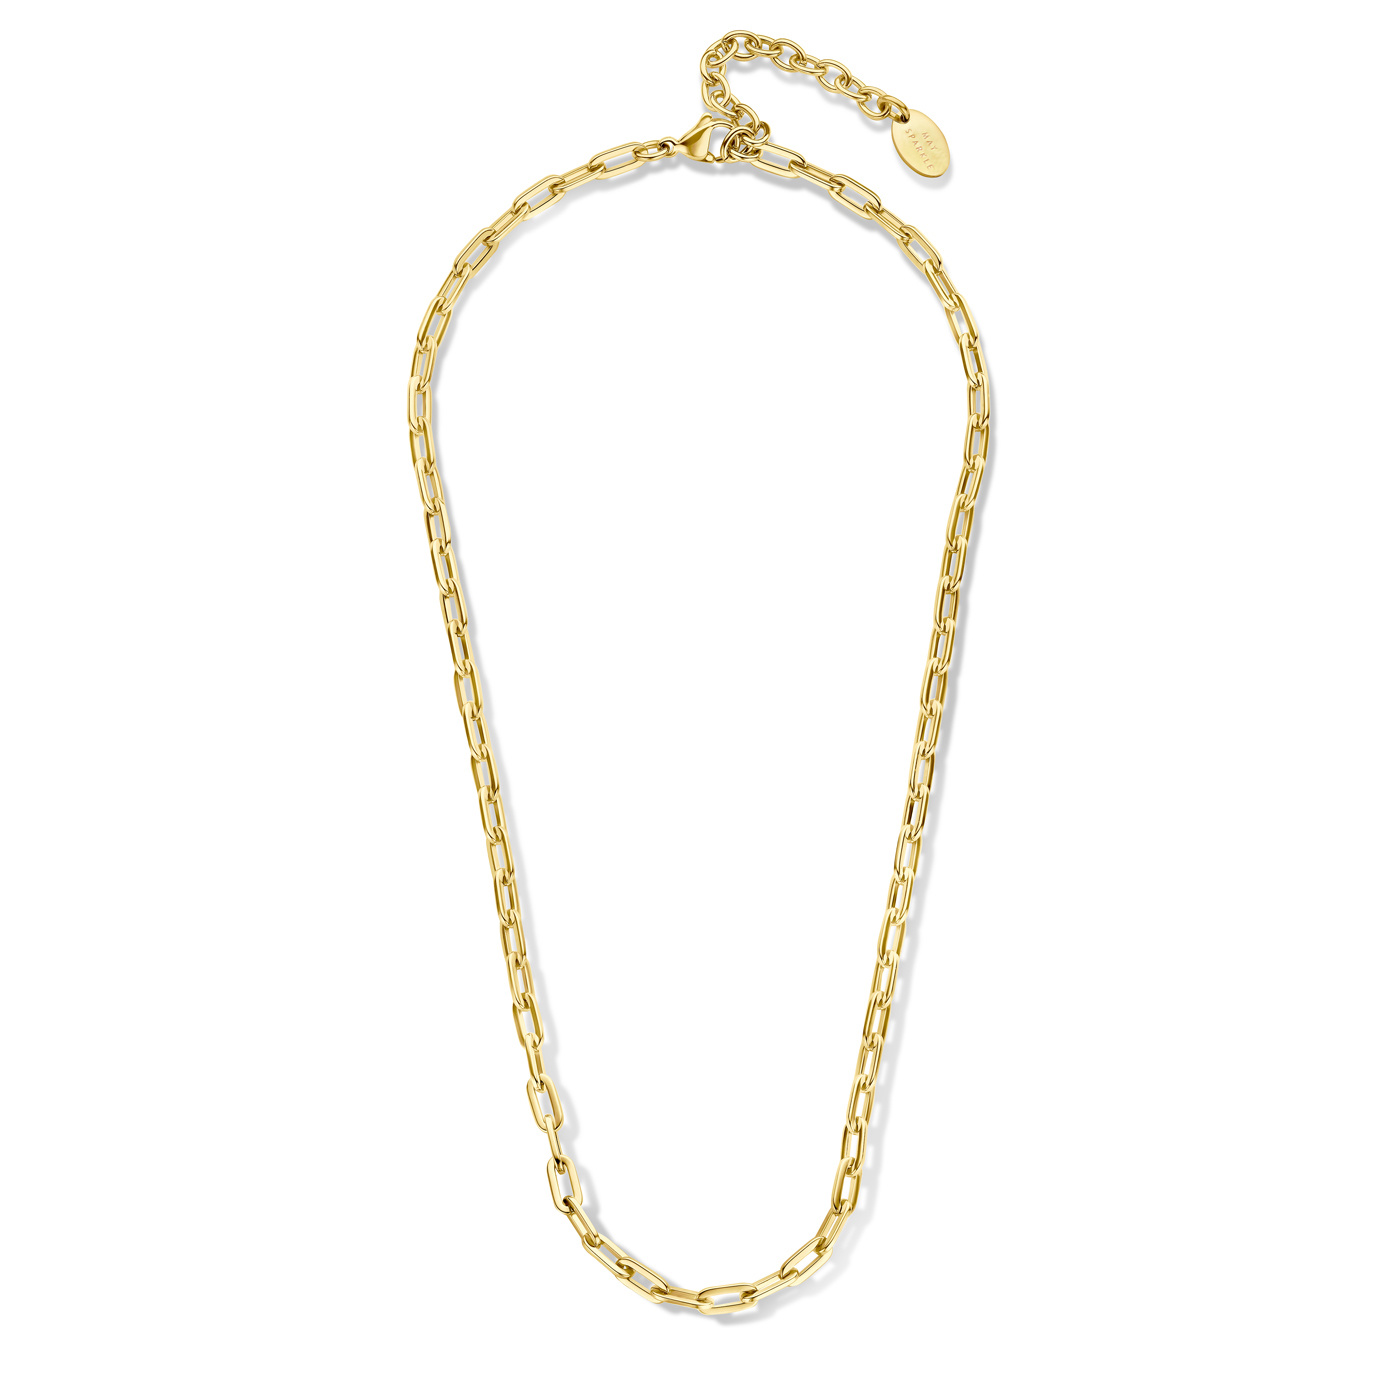 May Sparkle Happiness Senna gold colored necklace